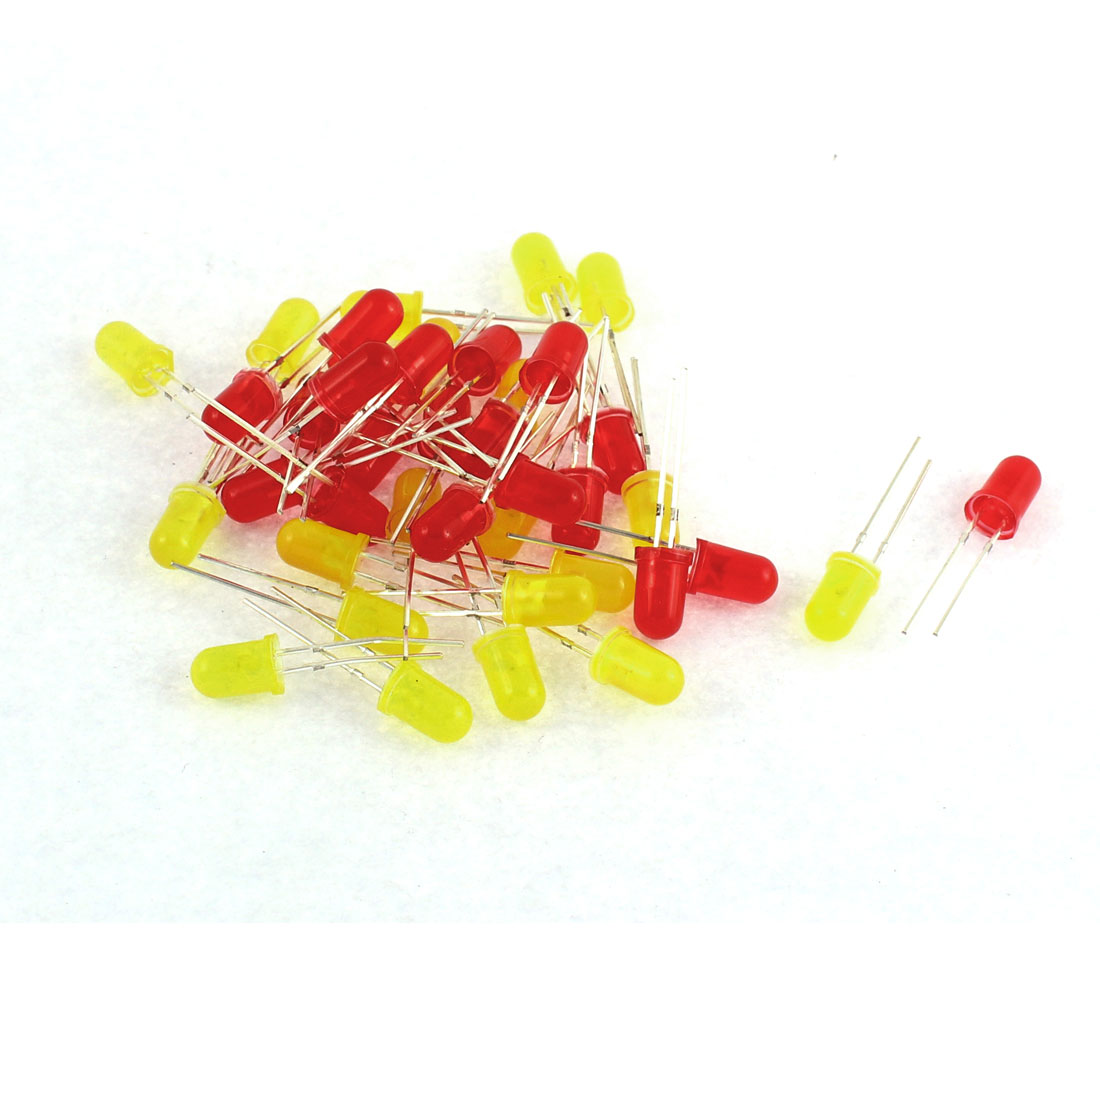 40pcs 2 Terminals Round Top Red Yellow Diffused Light Emitting Diode LEDs